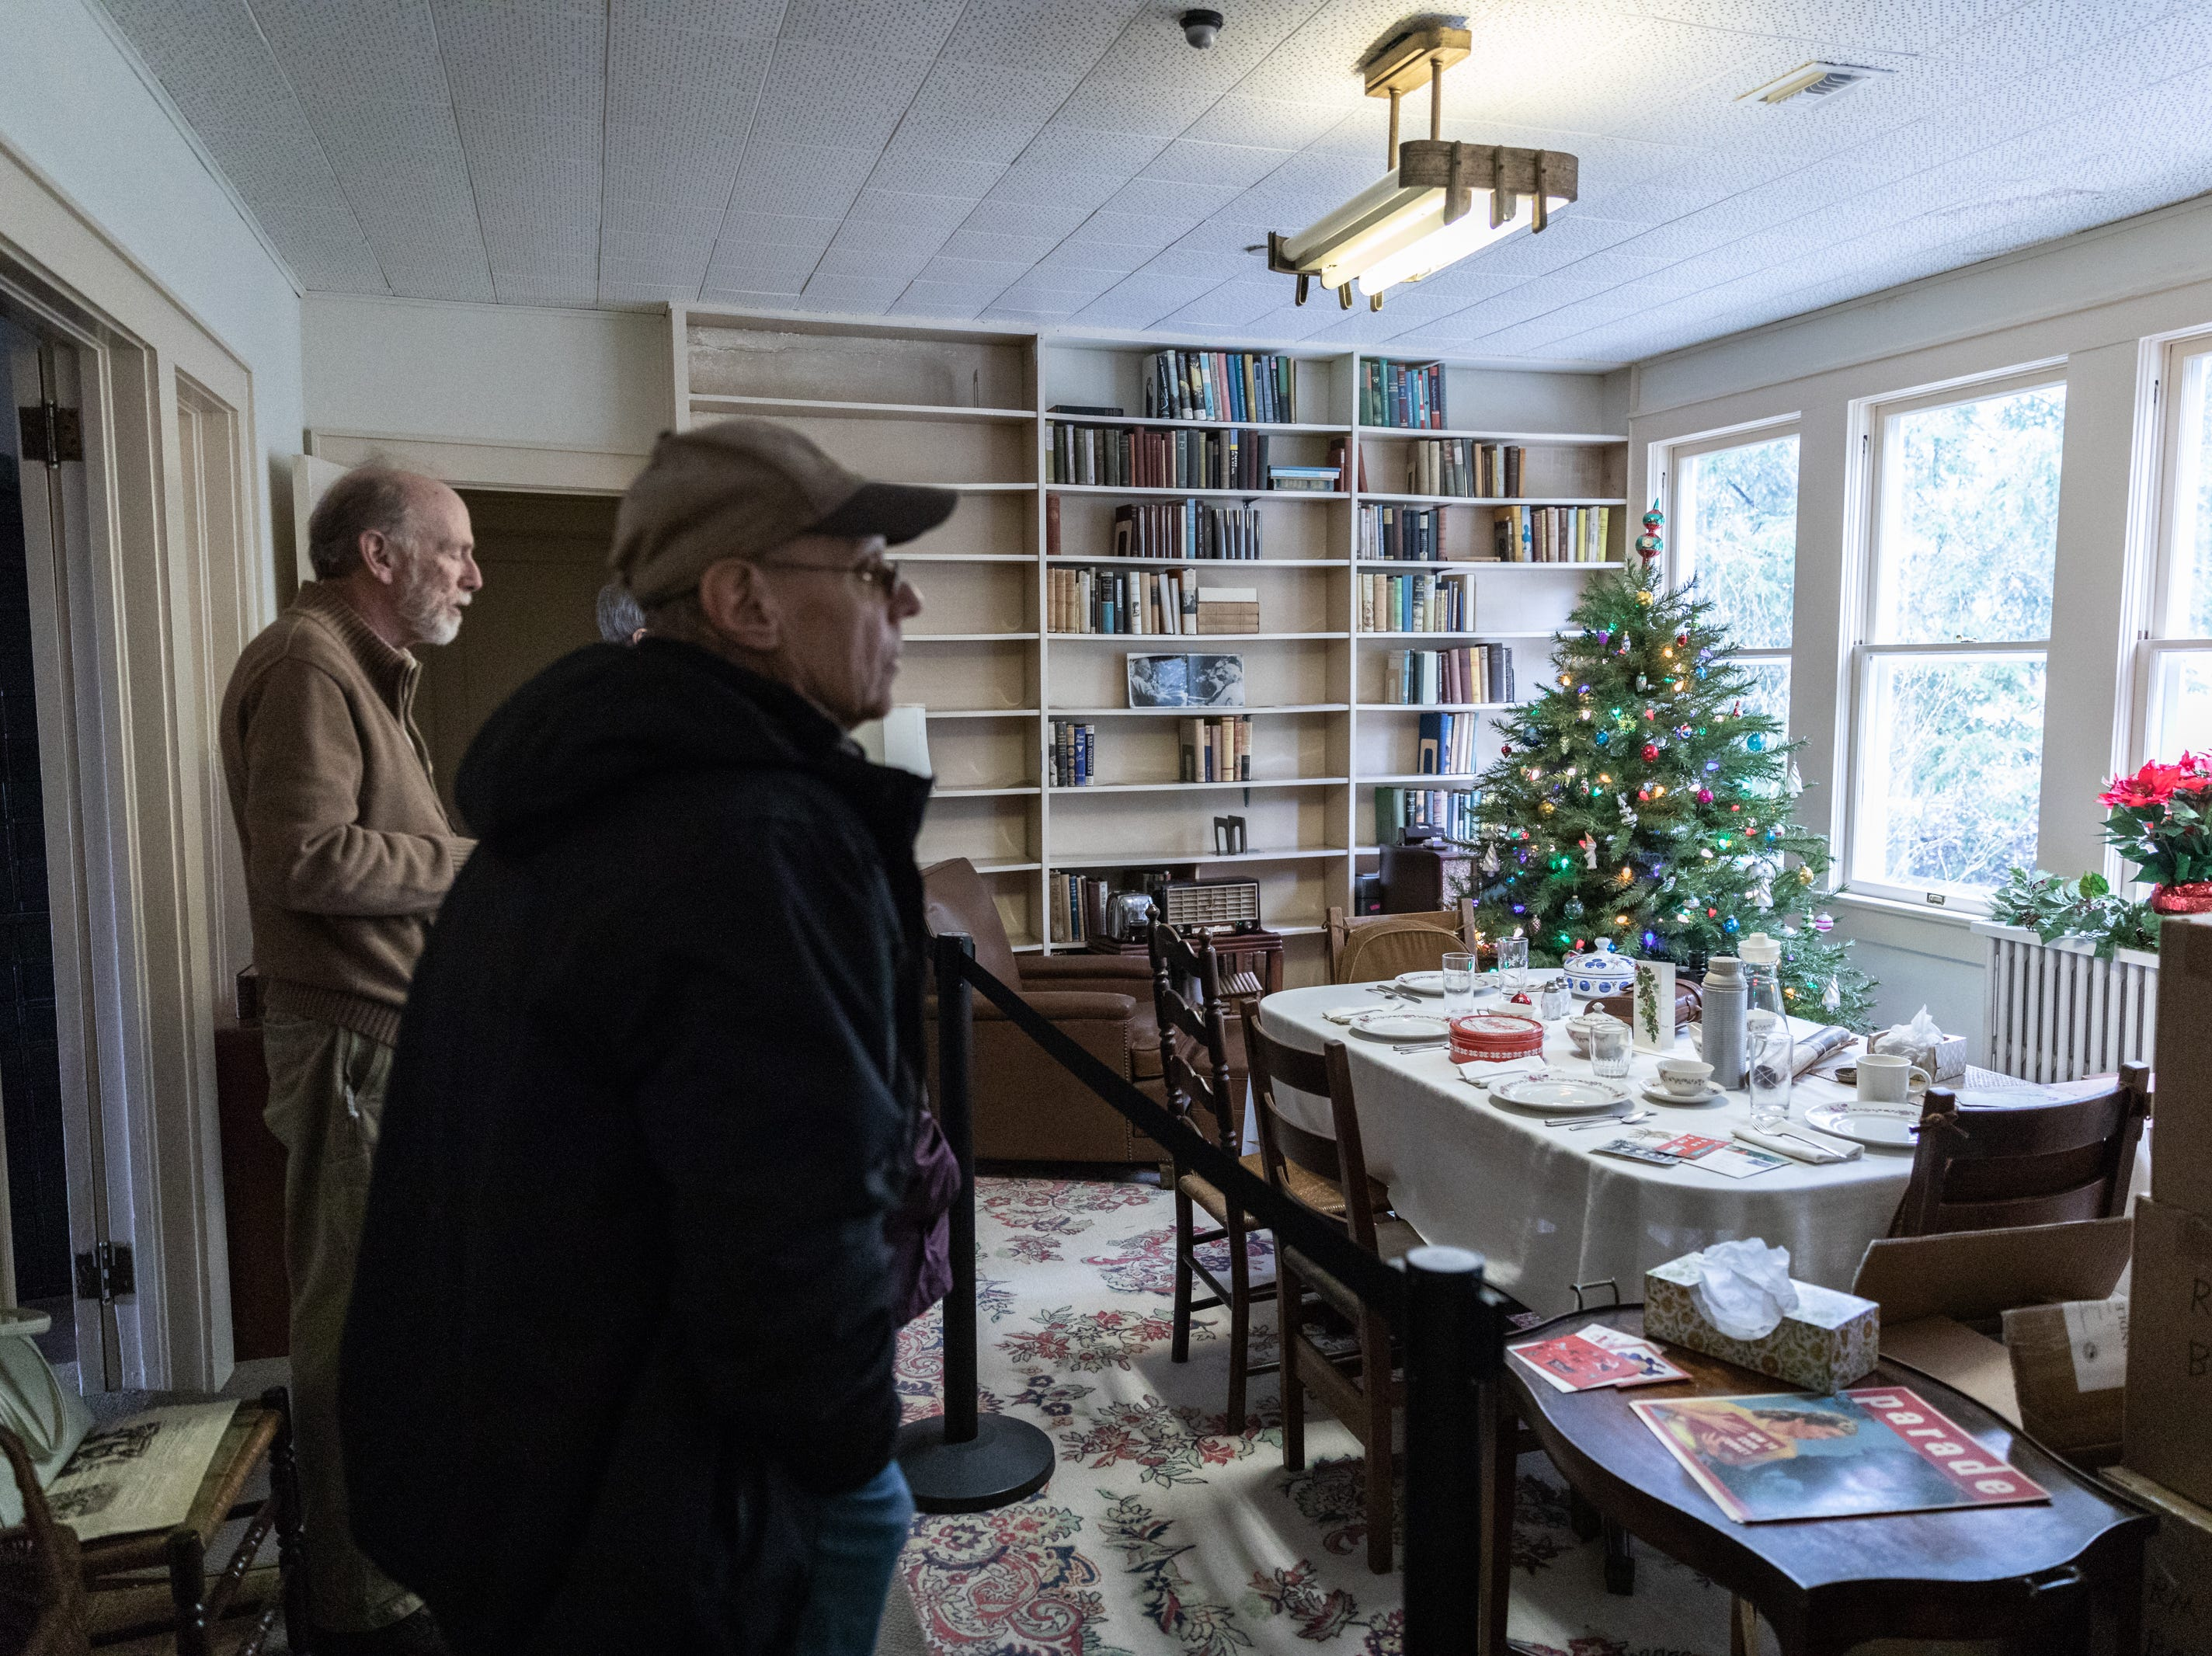 Visitors to the Carl Sandburg home tour the house while the park celebrated its 50th anniversary Nov. 24, 2018, with their Christmas at Connemara event featuring live music, storytellers and tours of the home.